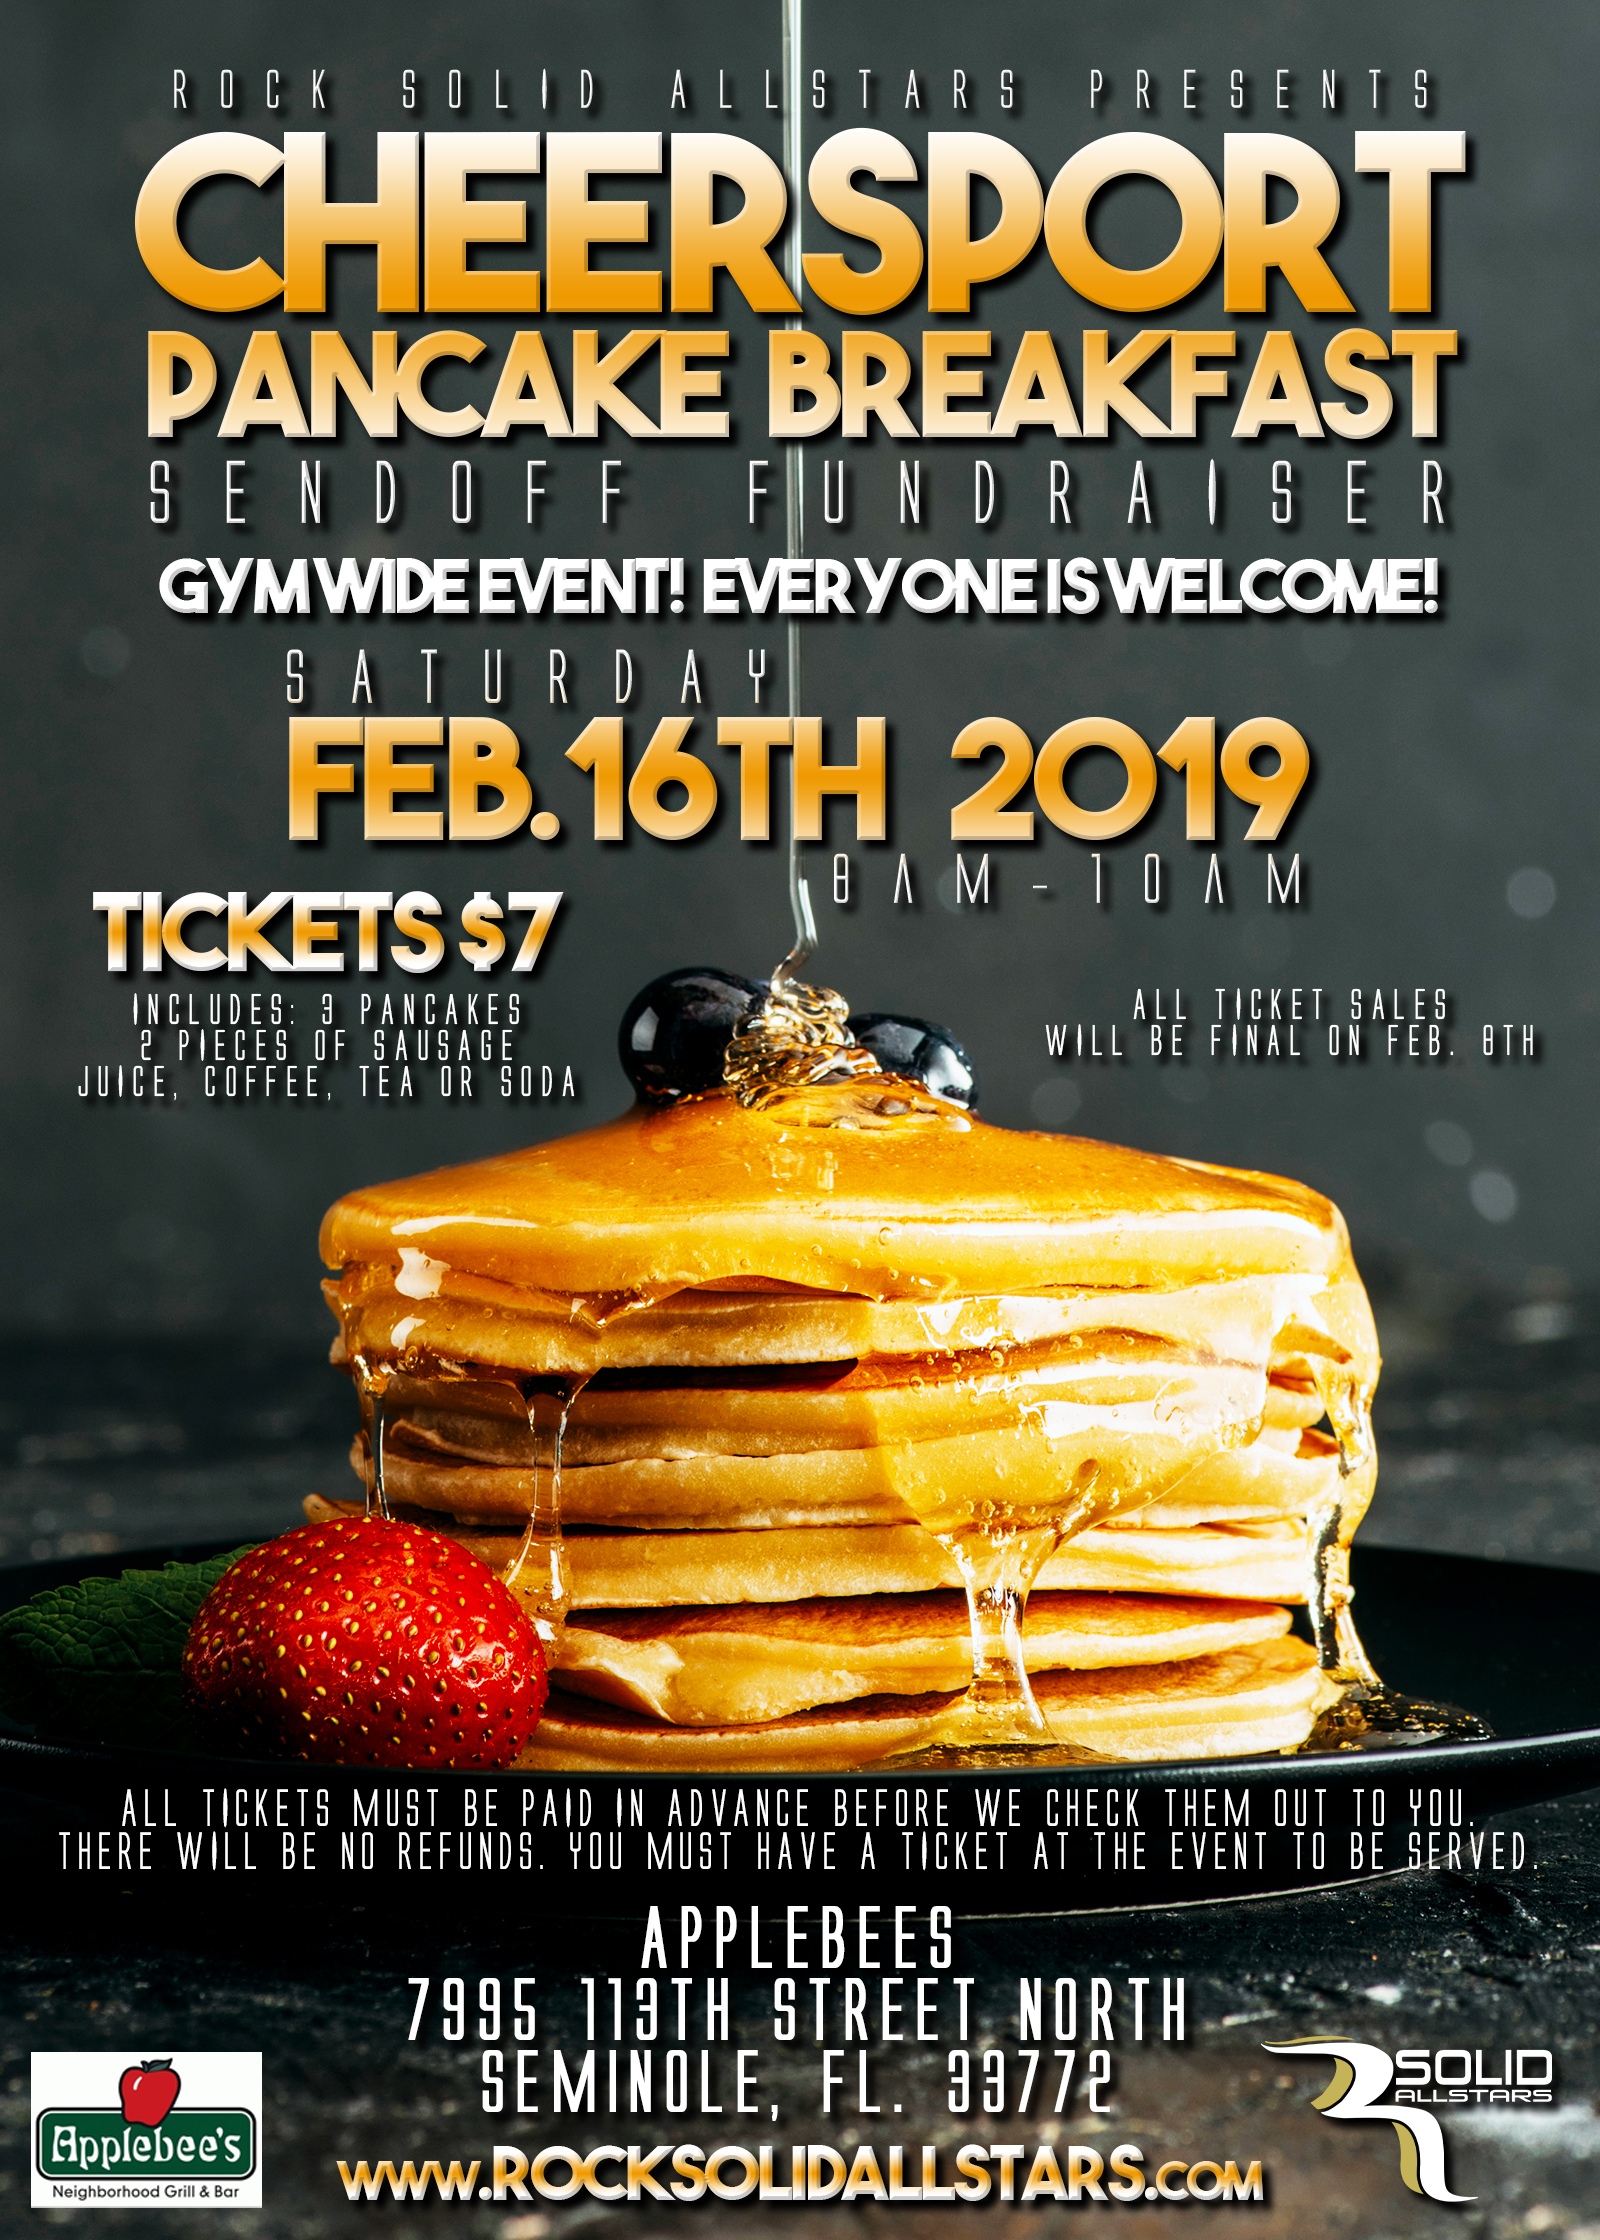 ROCK - Cheersport Pancake Breakfast 2019.jpg